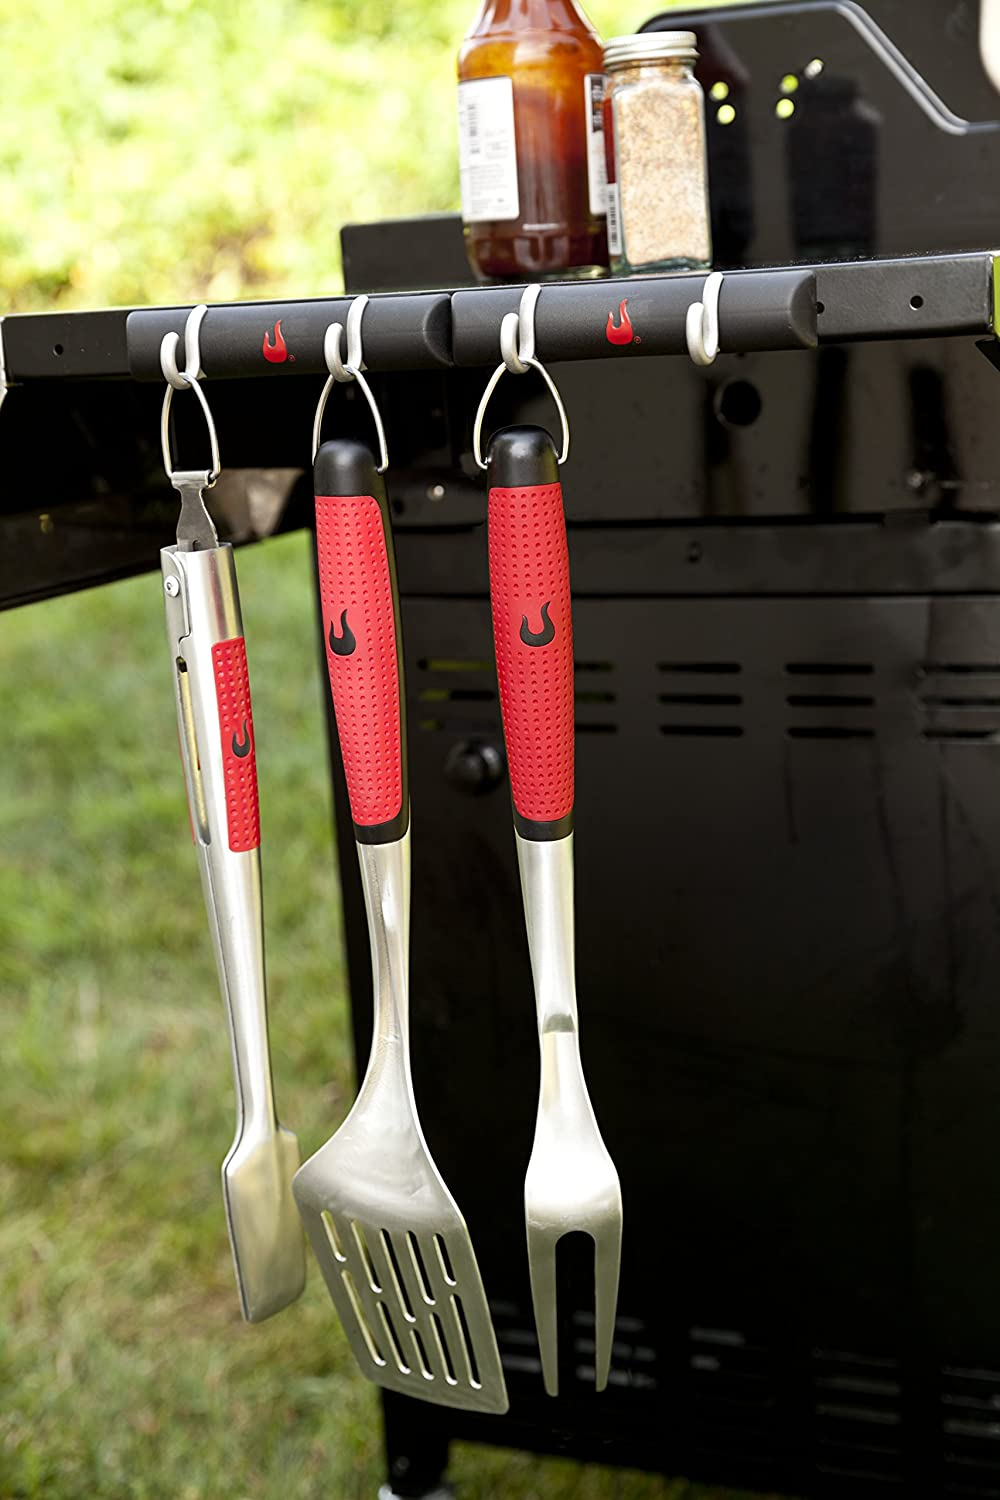 CHAR-BROIL 140 767 Premium 3-Piece Barbecue Accessory Set Charbroil 140 767